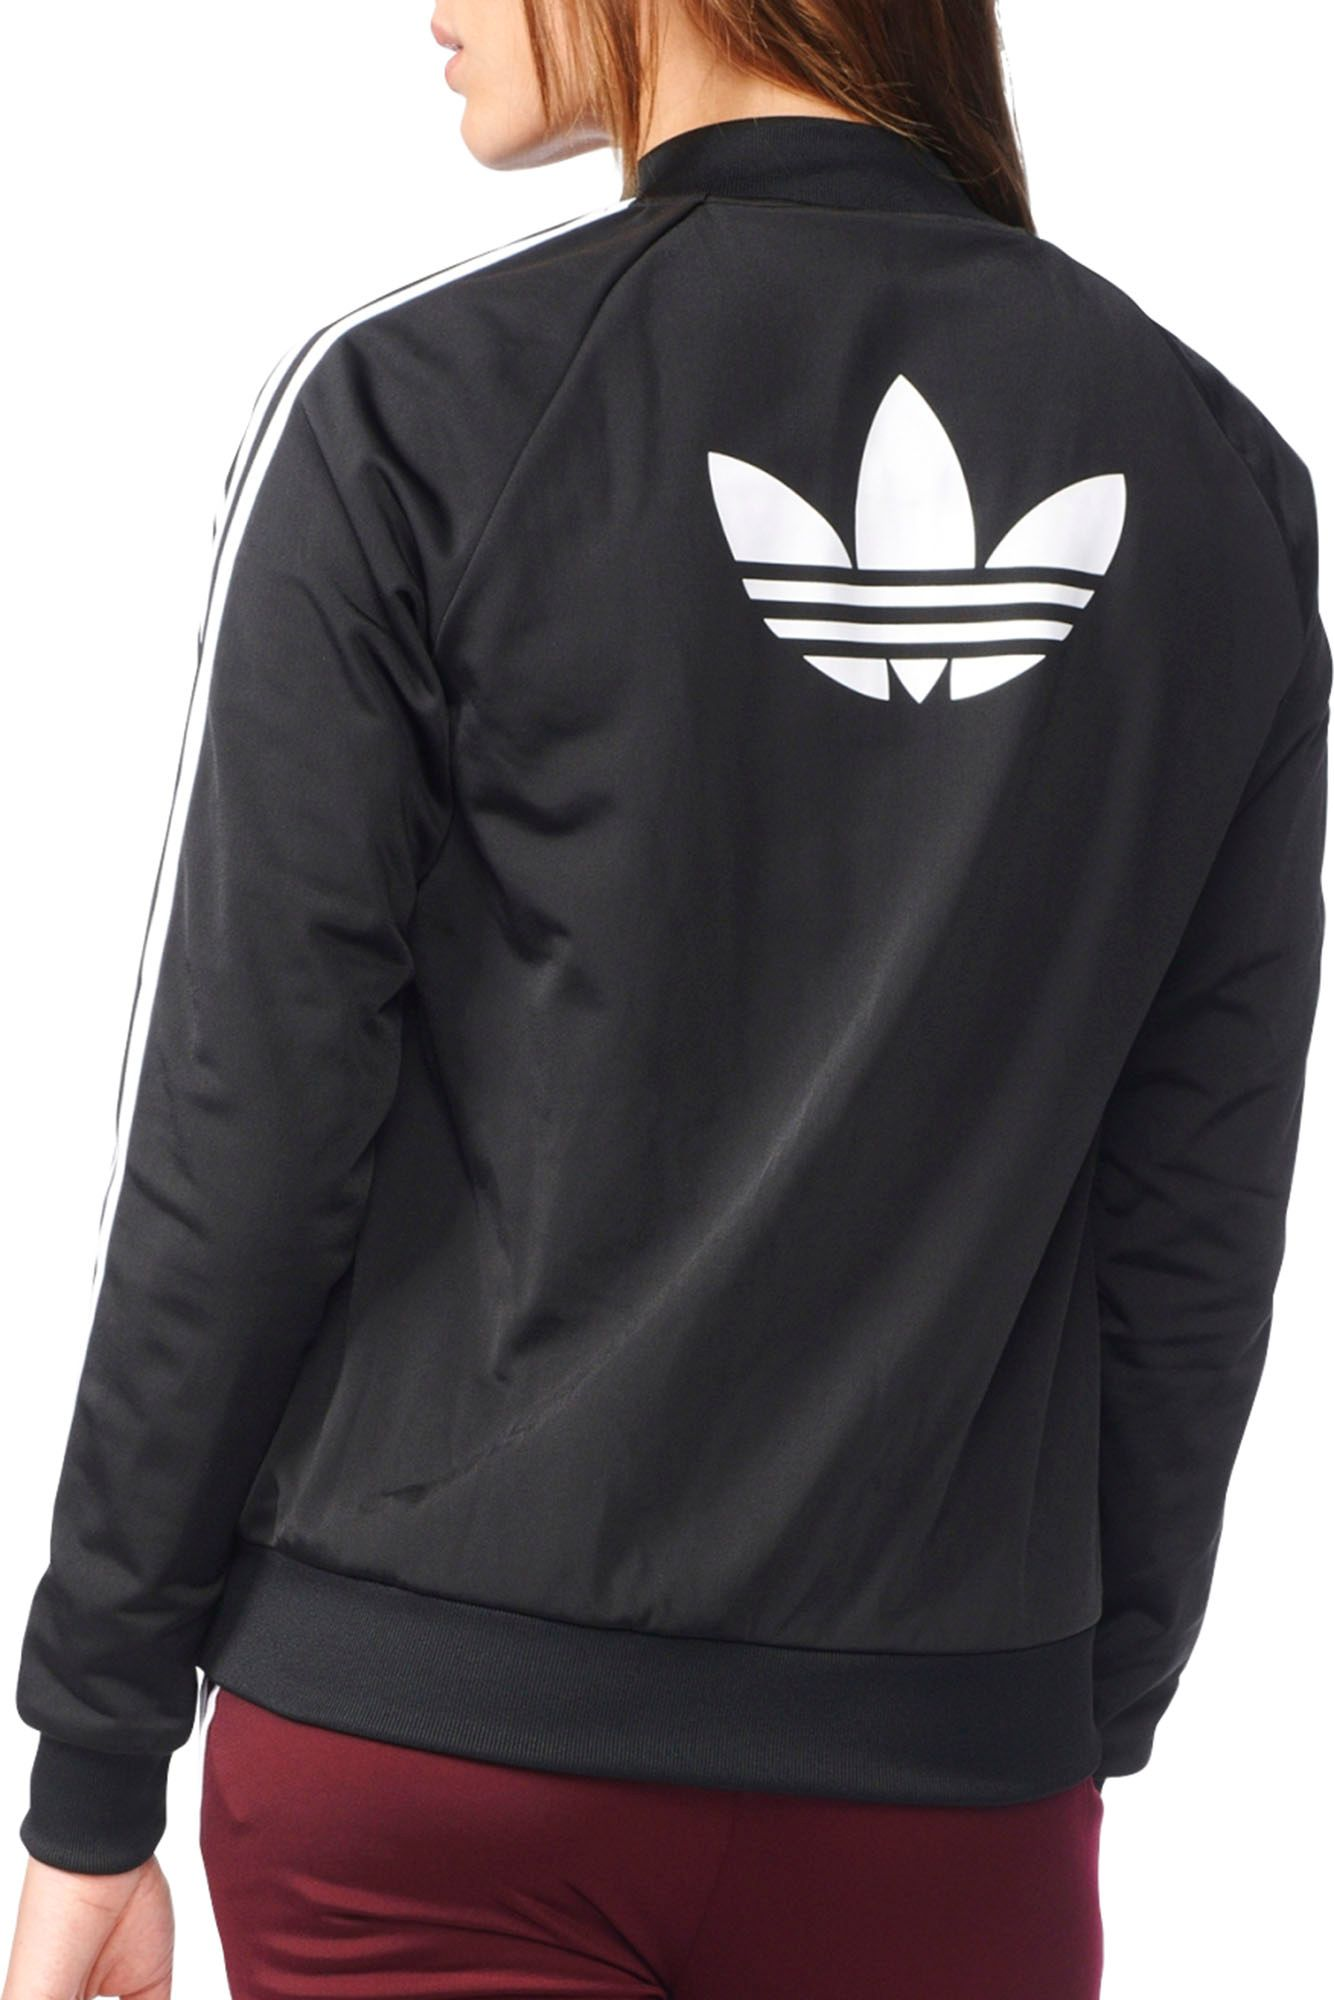 watch 94579 f444f adidas Originals Women u0027s Superstar Track Jacket